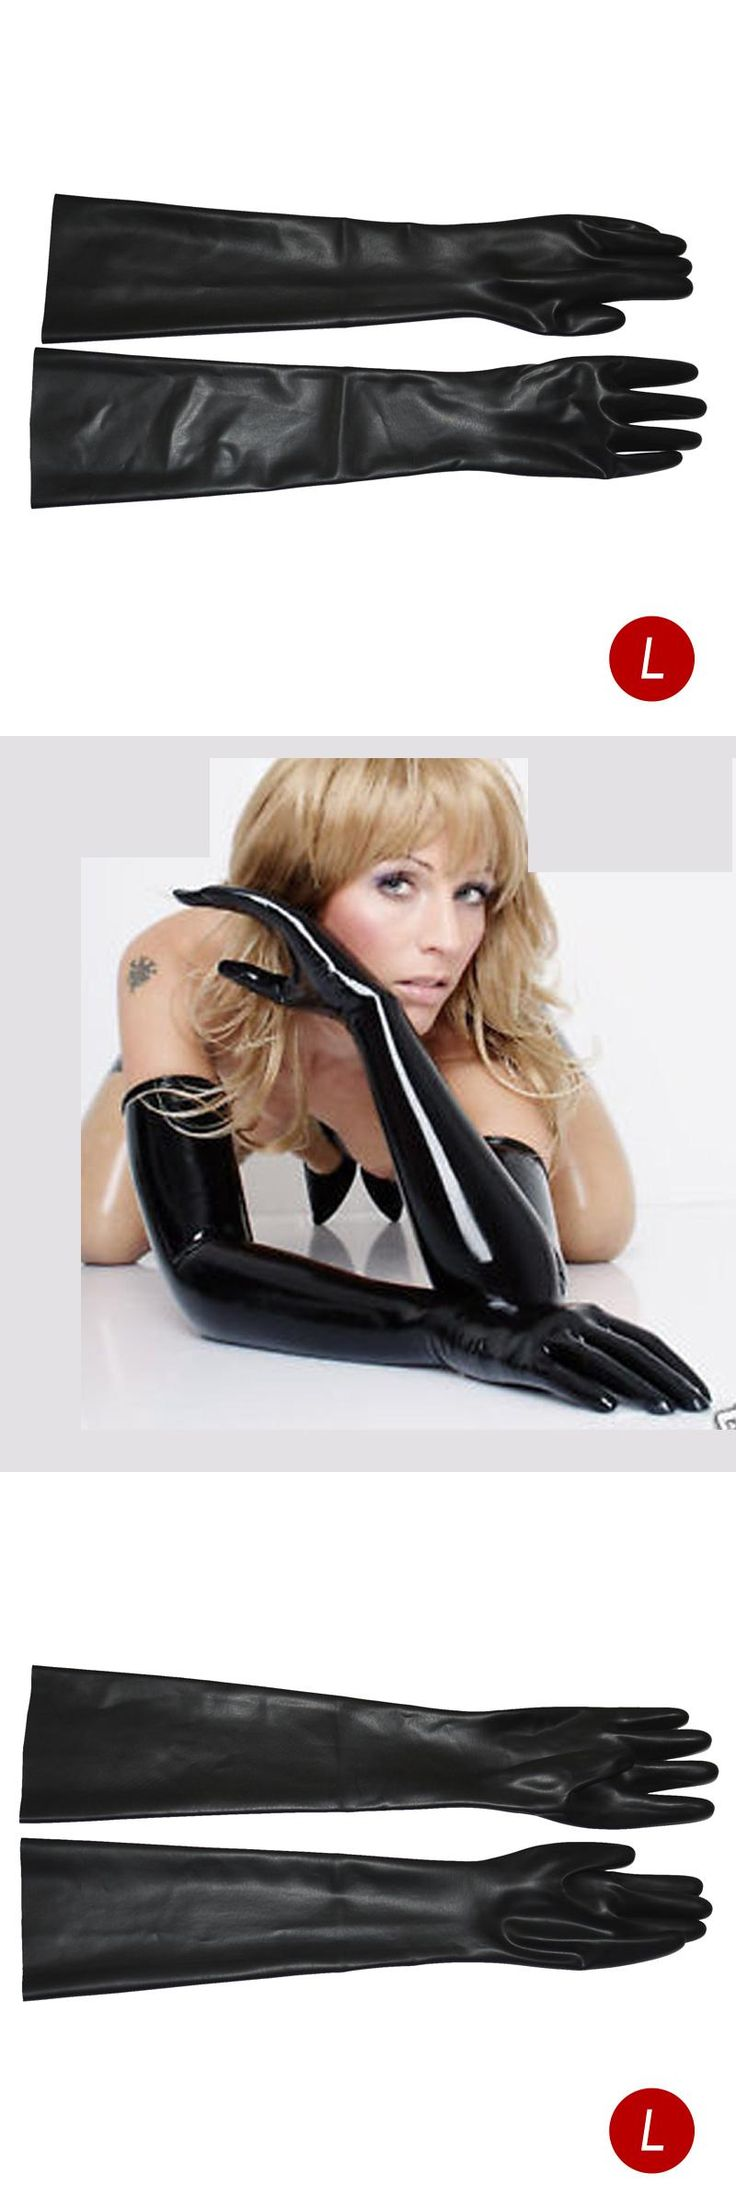 High Quality 3D Mould Black Latex Gloves Latex Very Long Very Long Gloves Fetish Fashion Gloves Size Large